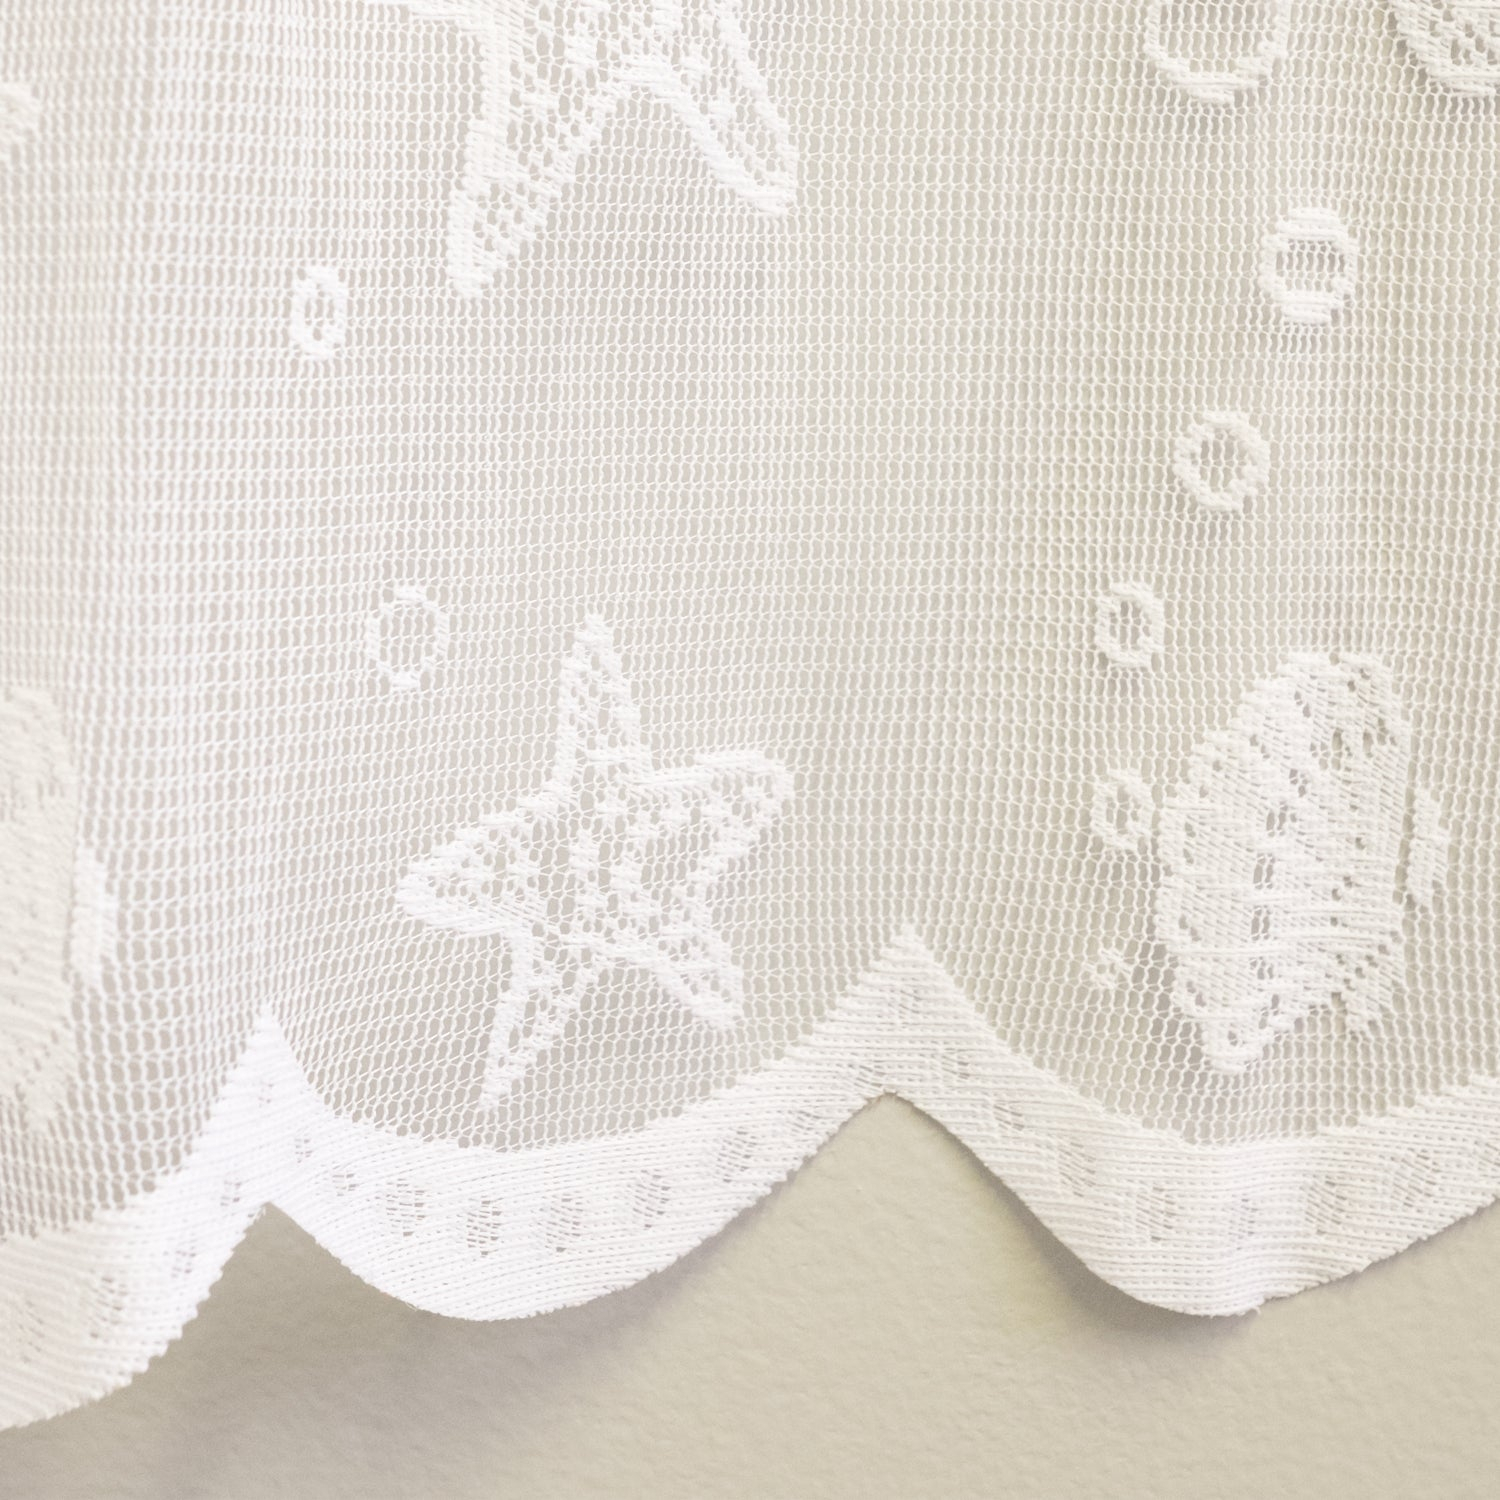 Marine Life Motif Knitted Lace Window Curtain Panel Pertaining To Marine Life Motif Knitted Lace Window Curtain Pieces (View 4 of 20)